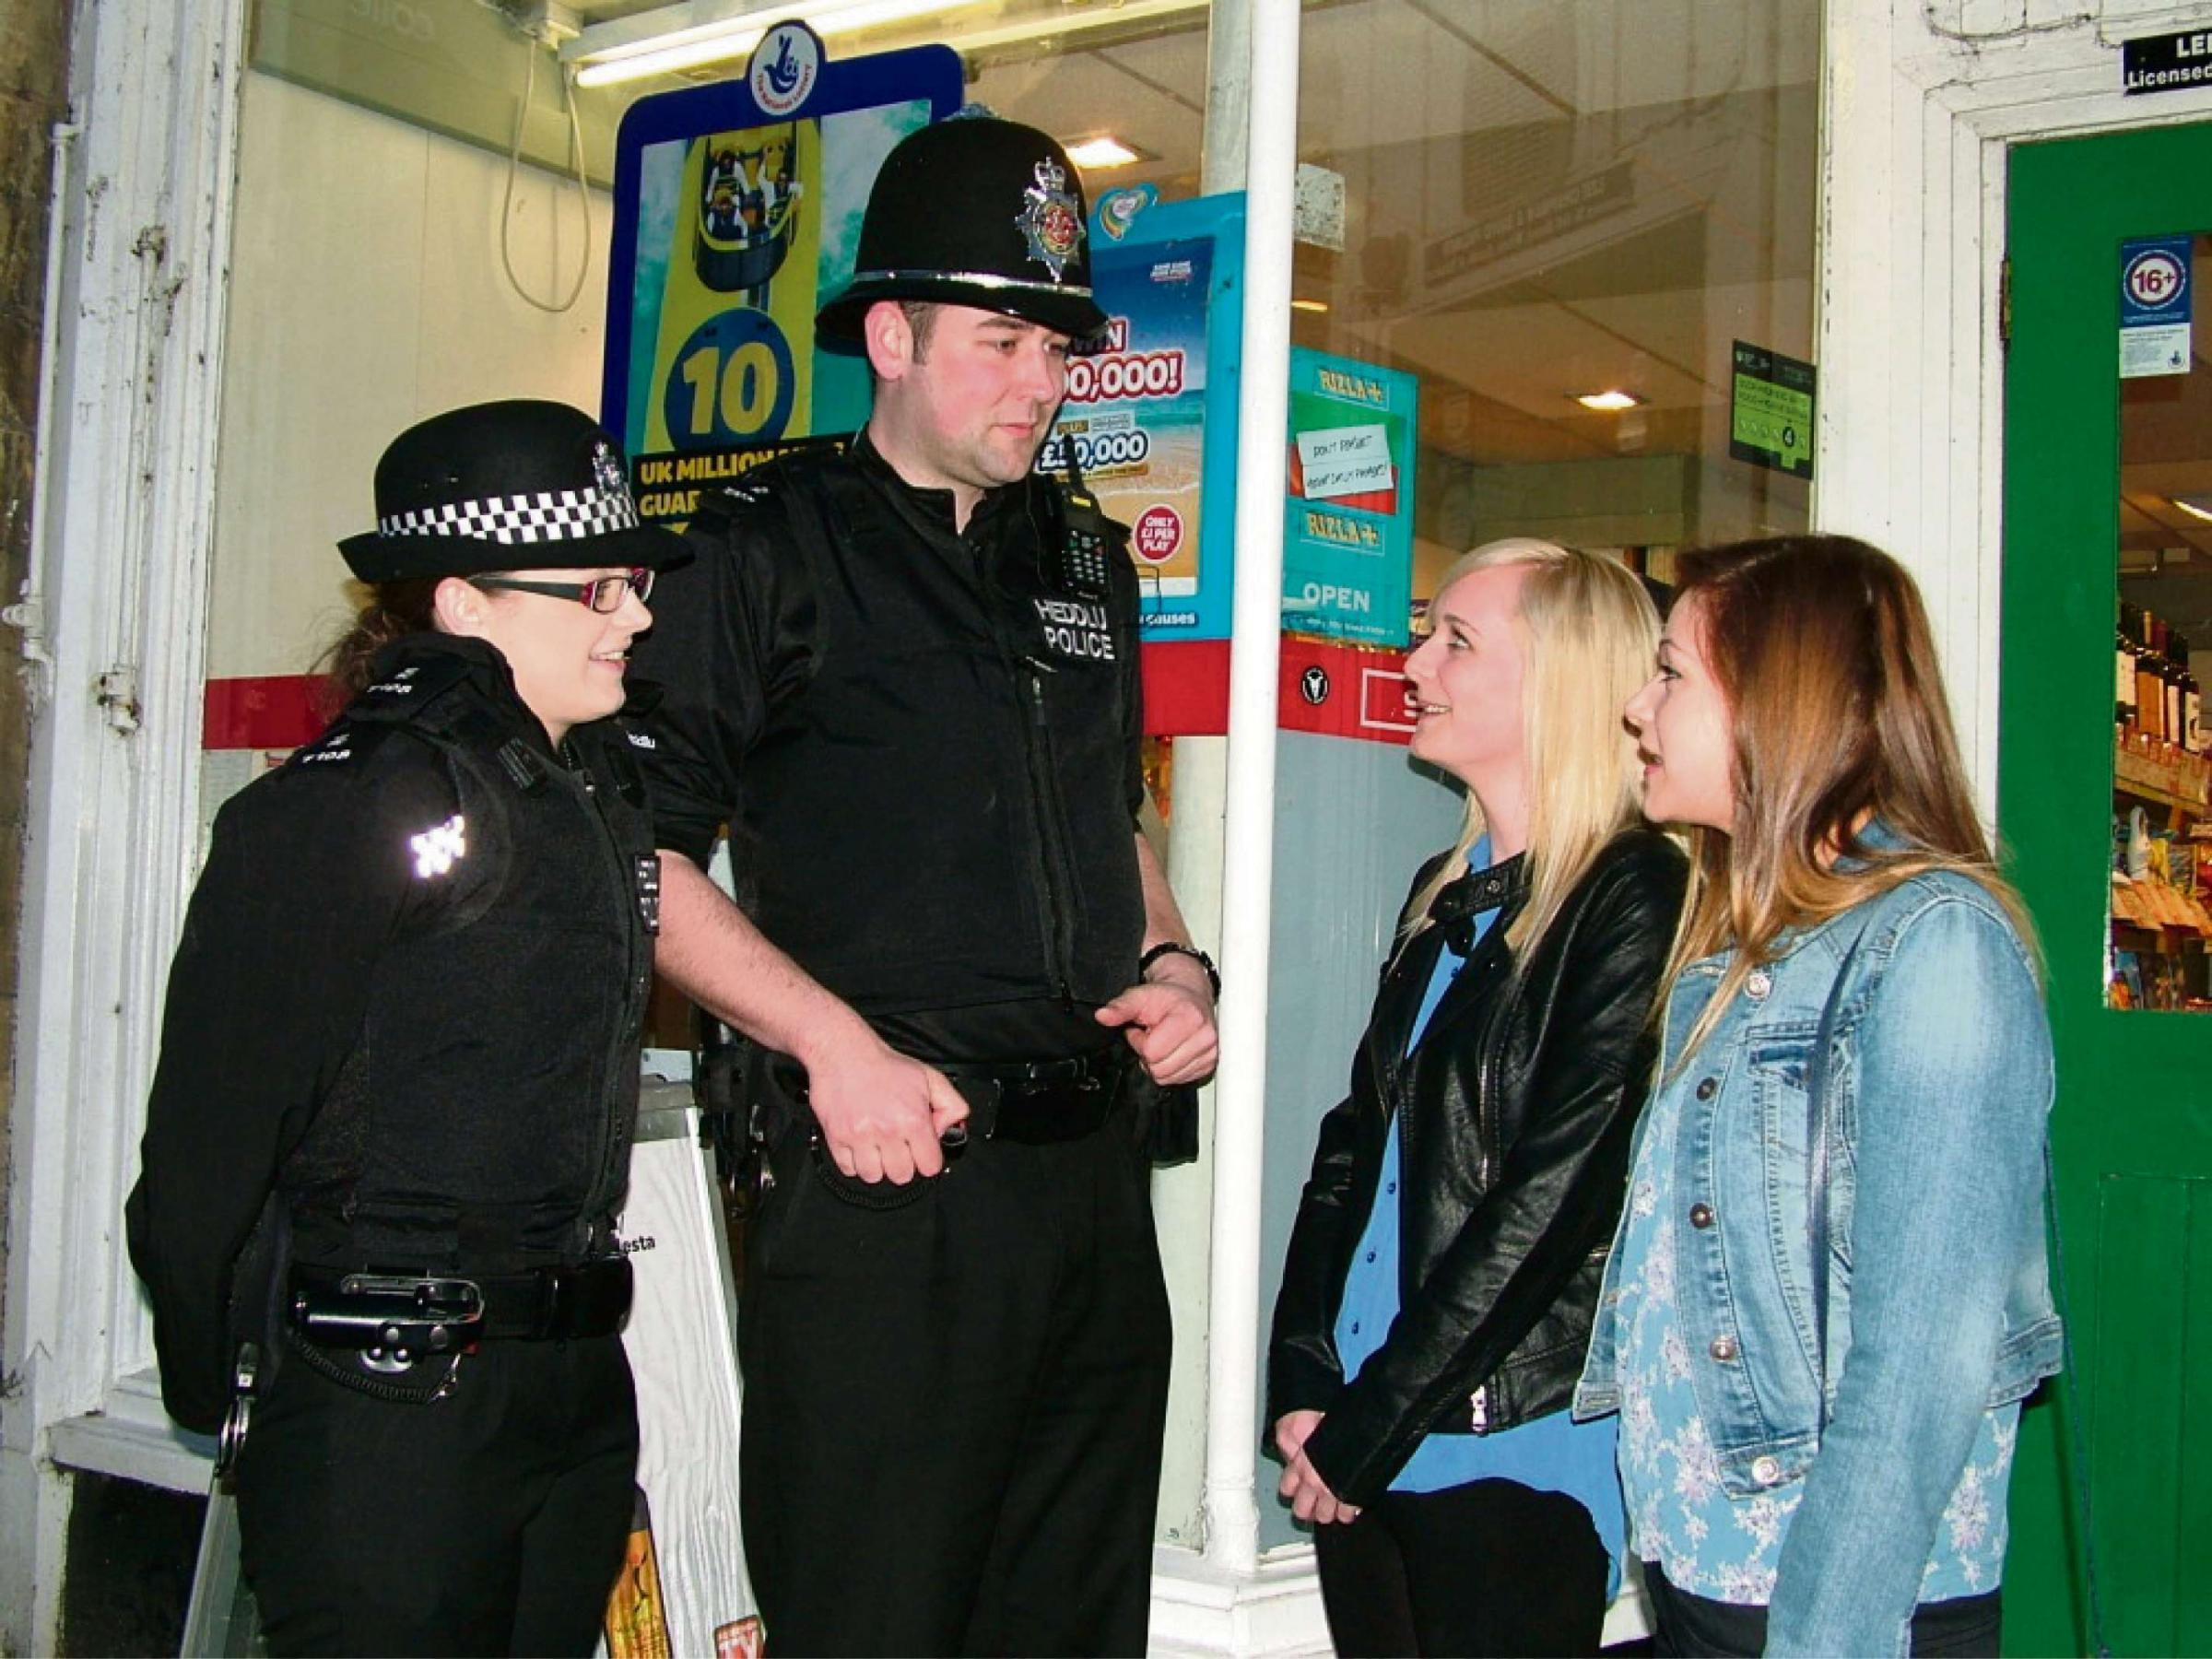 Special Constables Jess Barrett and Jim Cooke in Knighton doing some community policing and talking to Sophie Price from New Radnor and Sophie Evans from Knighton.